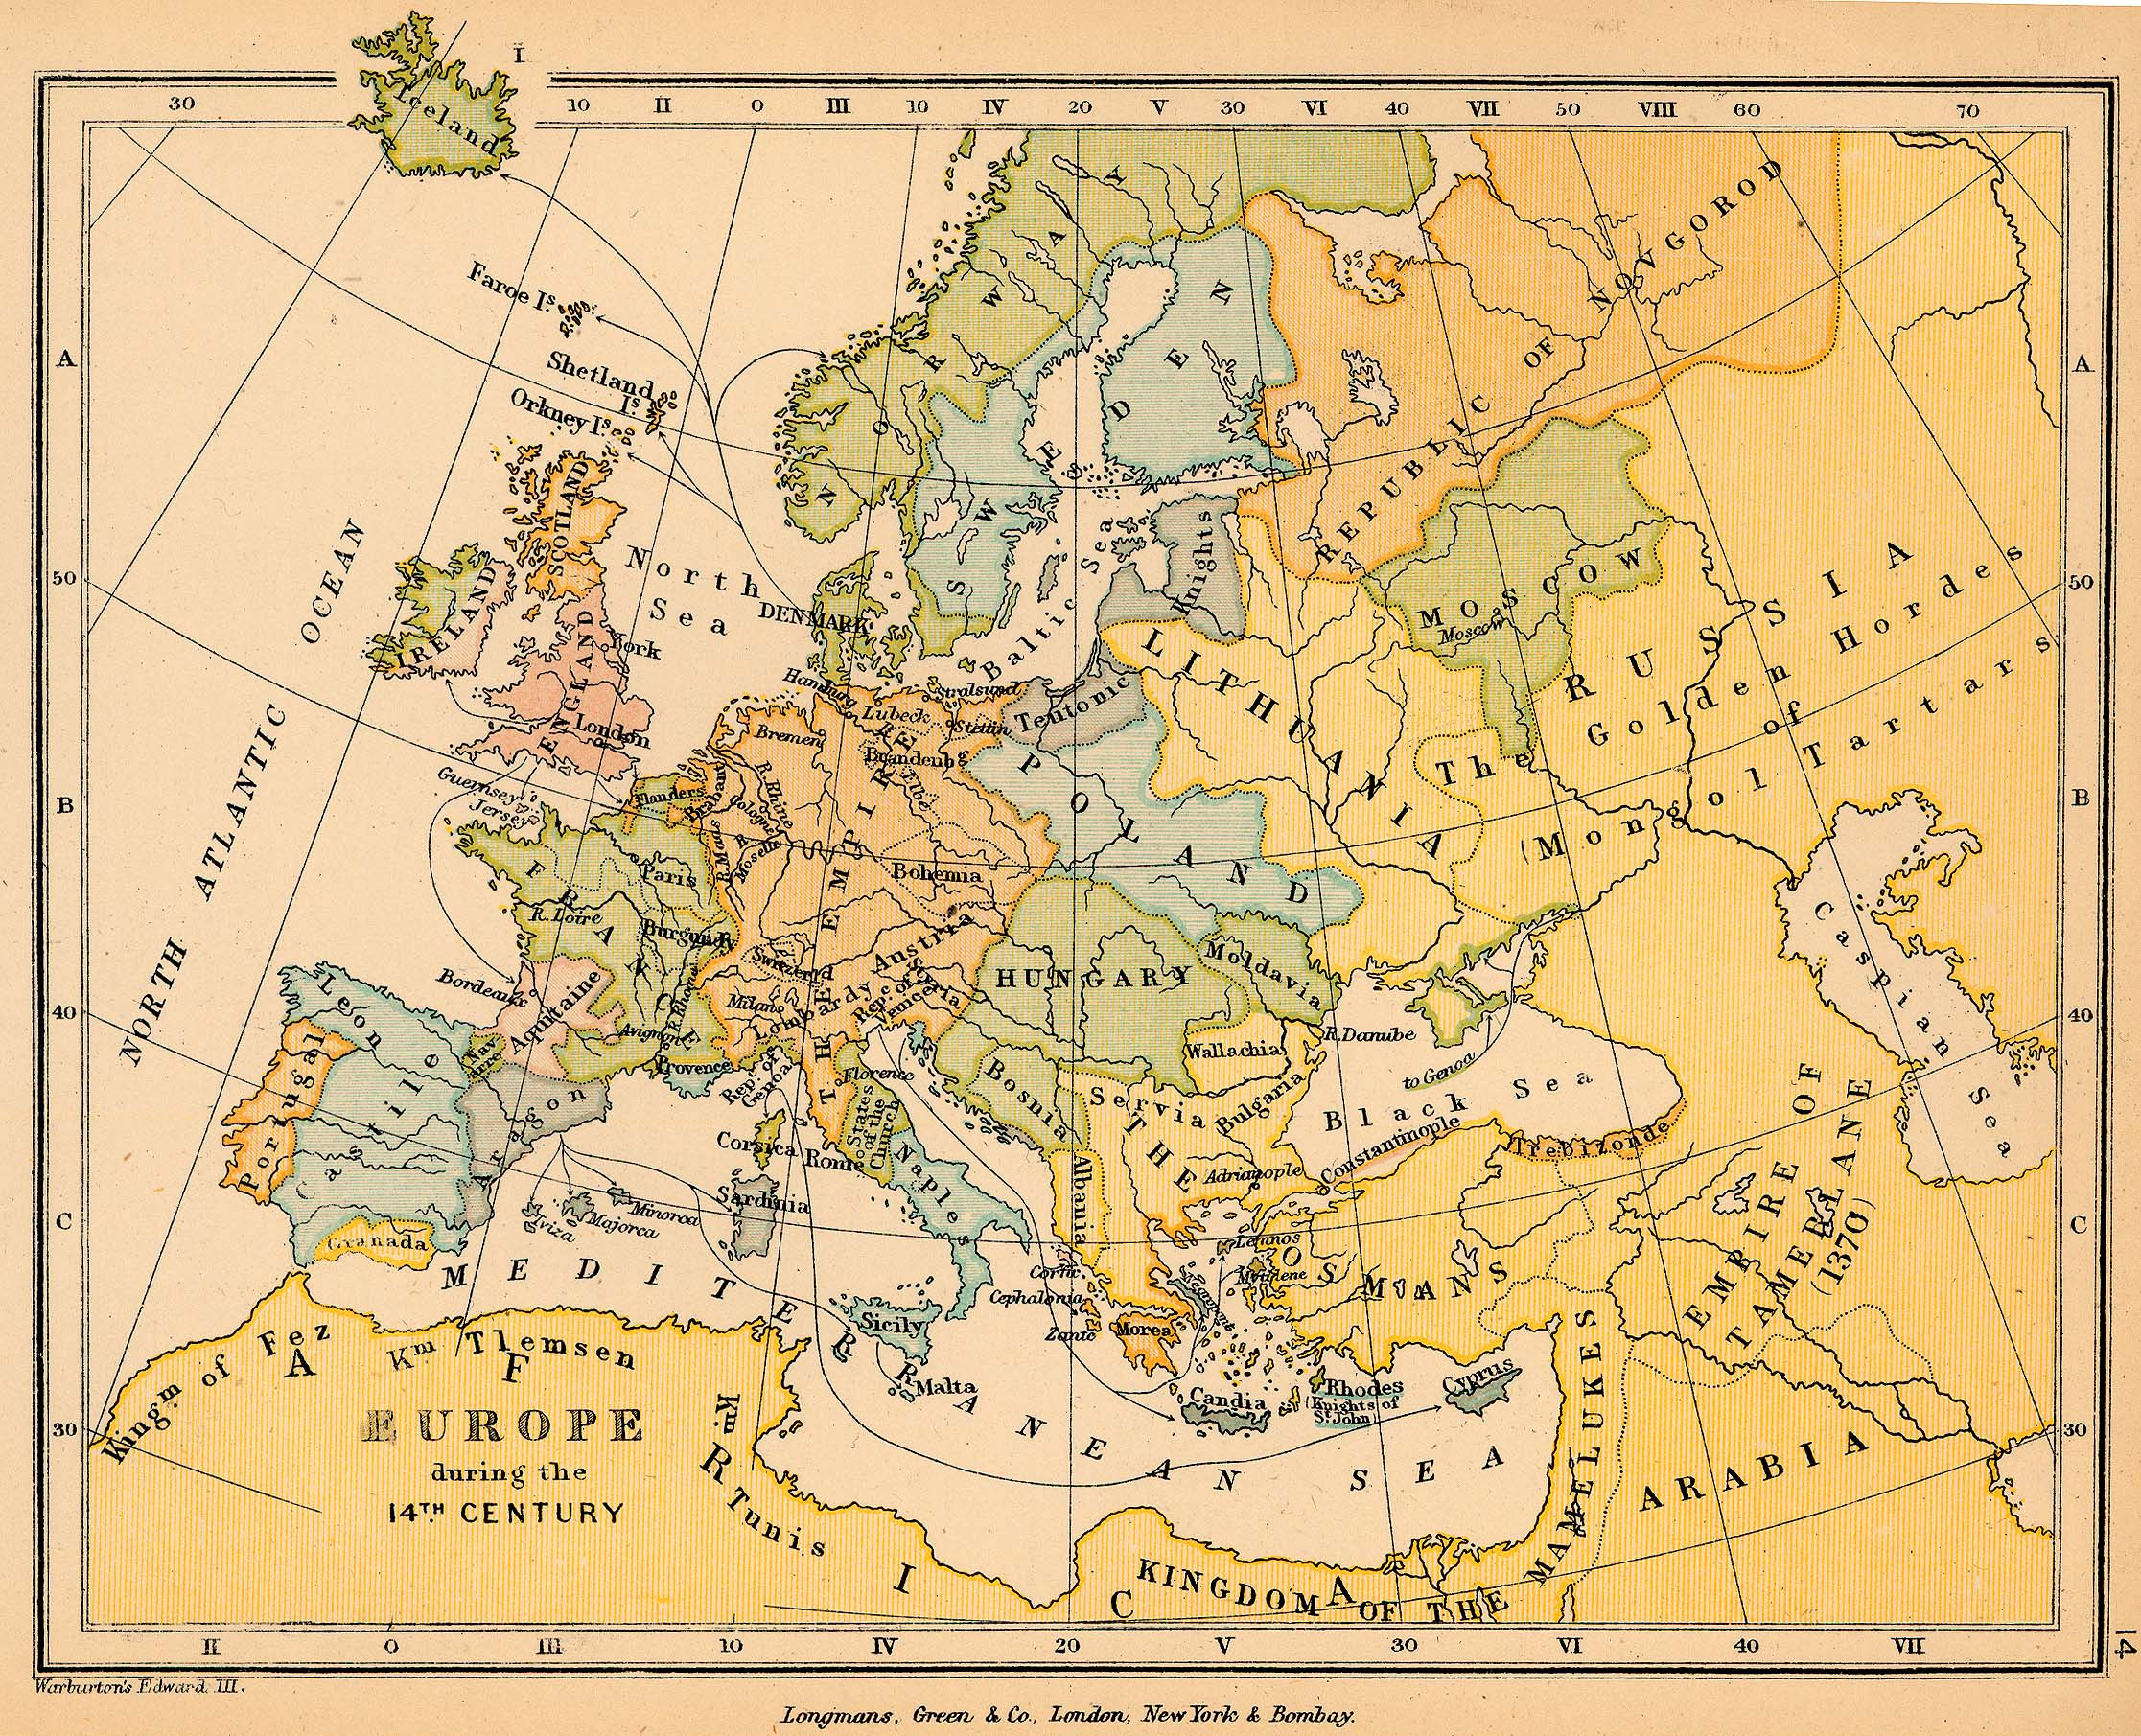 Map of Europe during the 14th Century